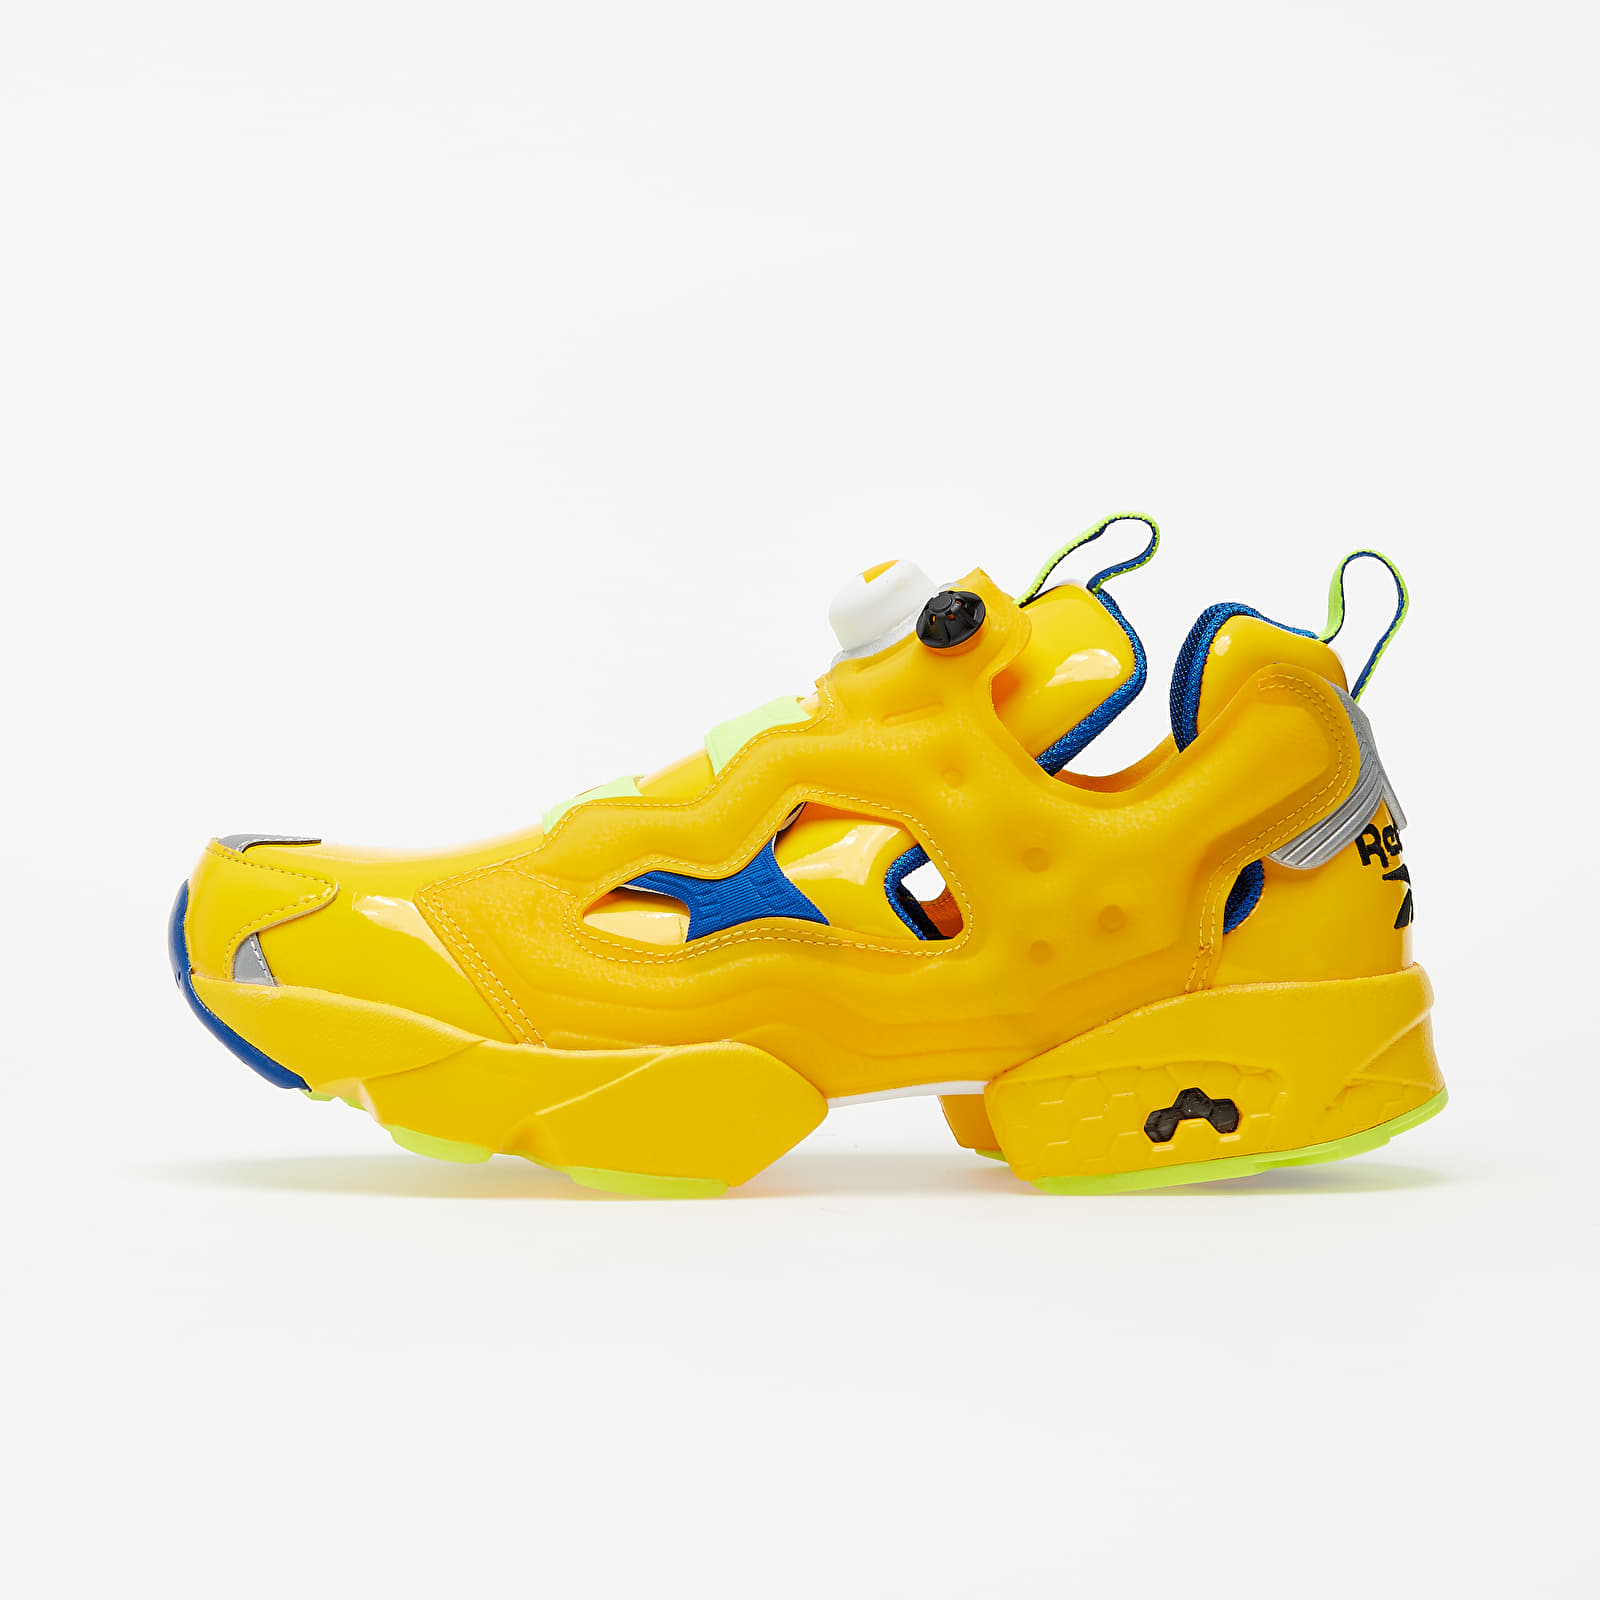 Chaussures et baskets homme Reebok x Minions Instapump Fury MU Primal Yellow/ Solar Yellow/ Humble Blue